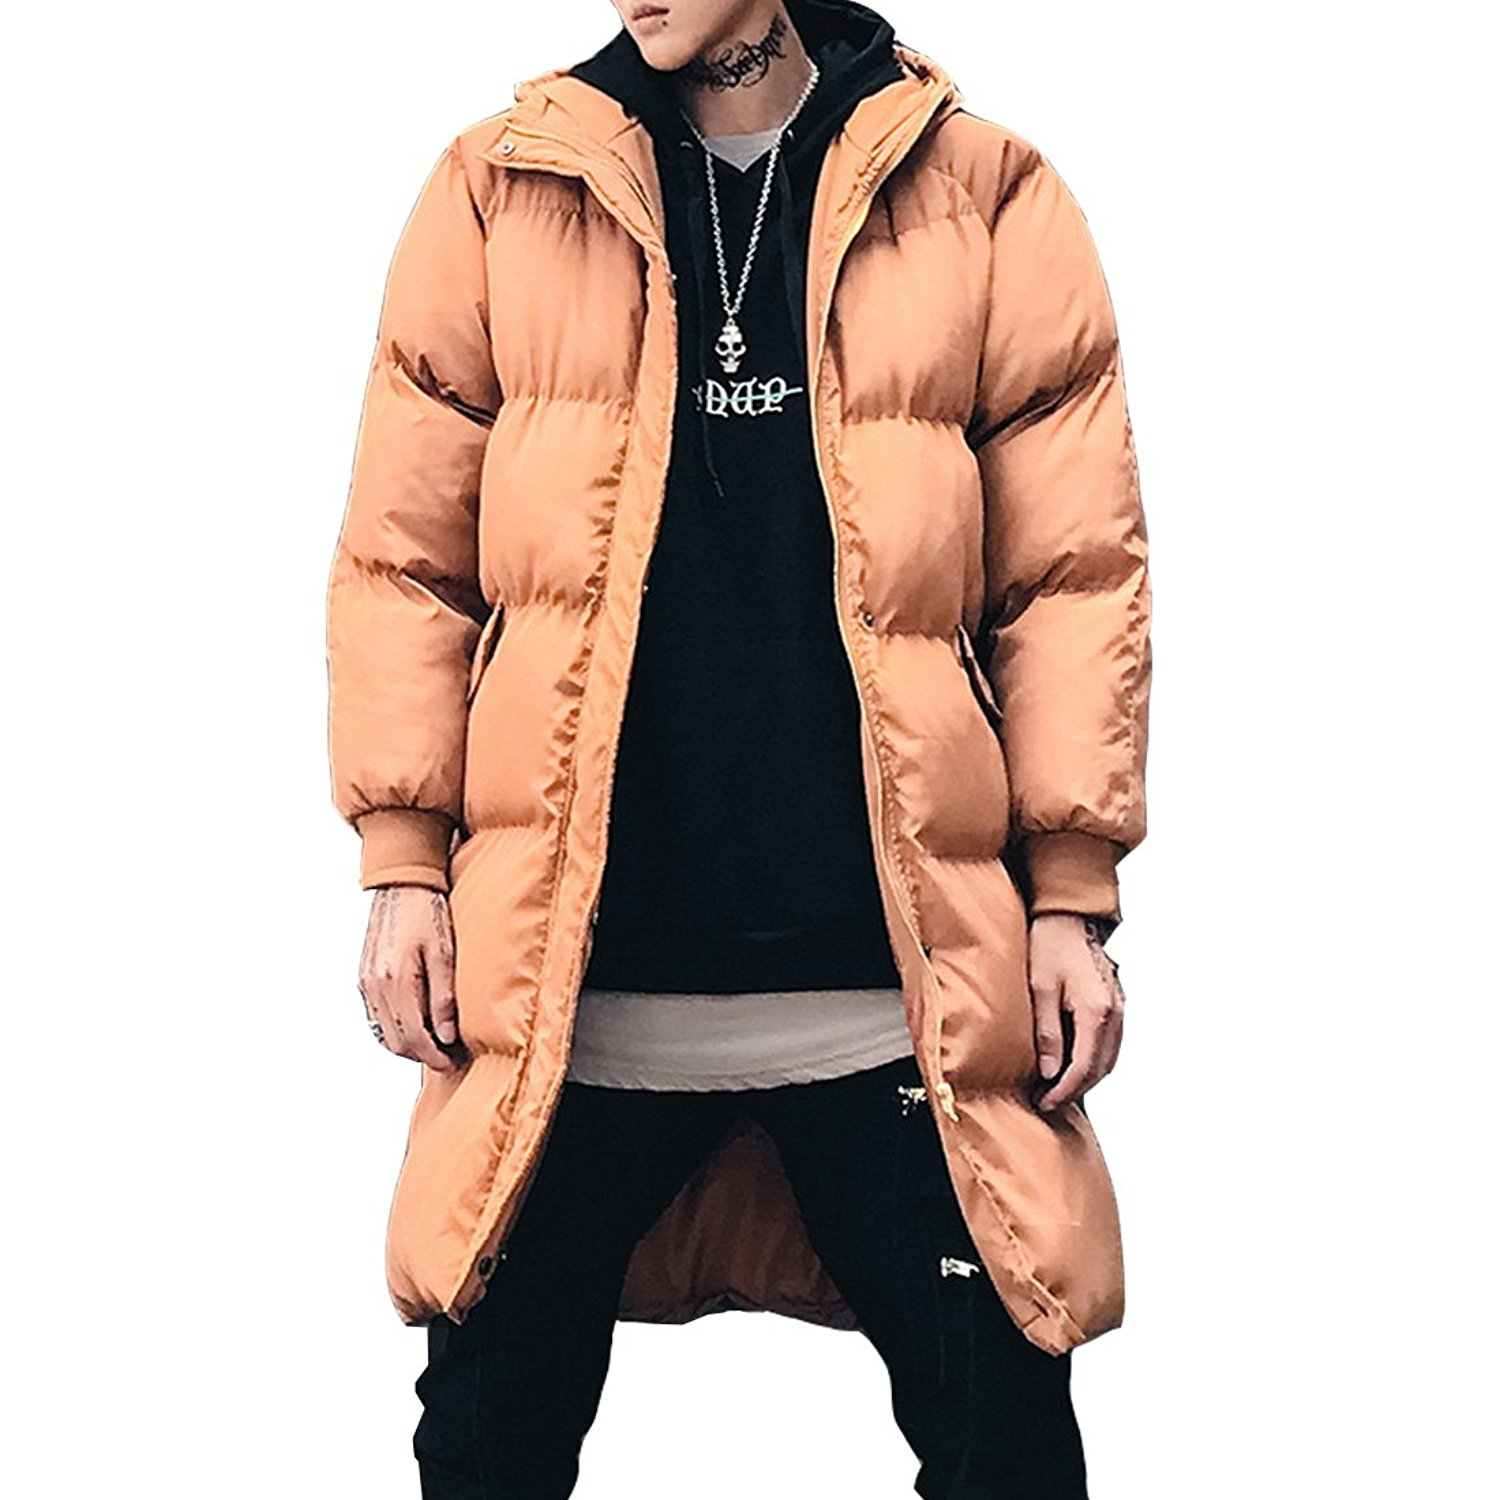 Hzcx Fashion Men's Cotton-Padded Quilted Loose Puff Winter Thick Coats With Hood